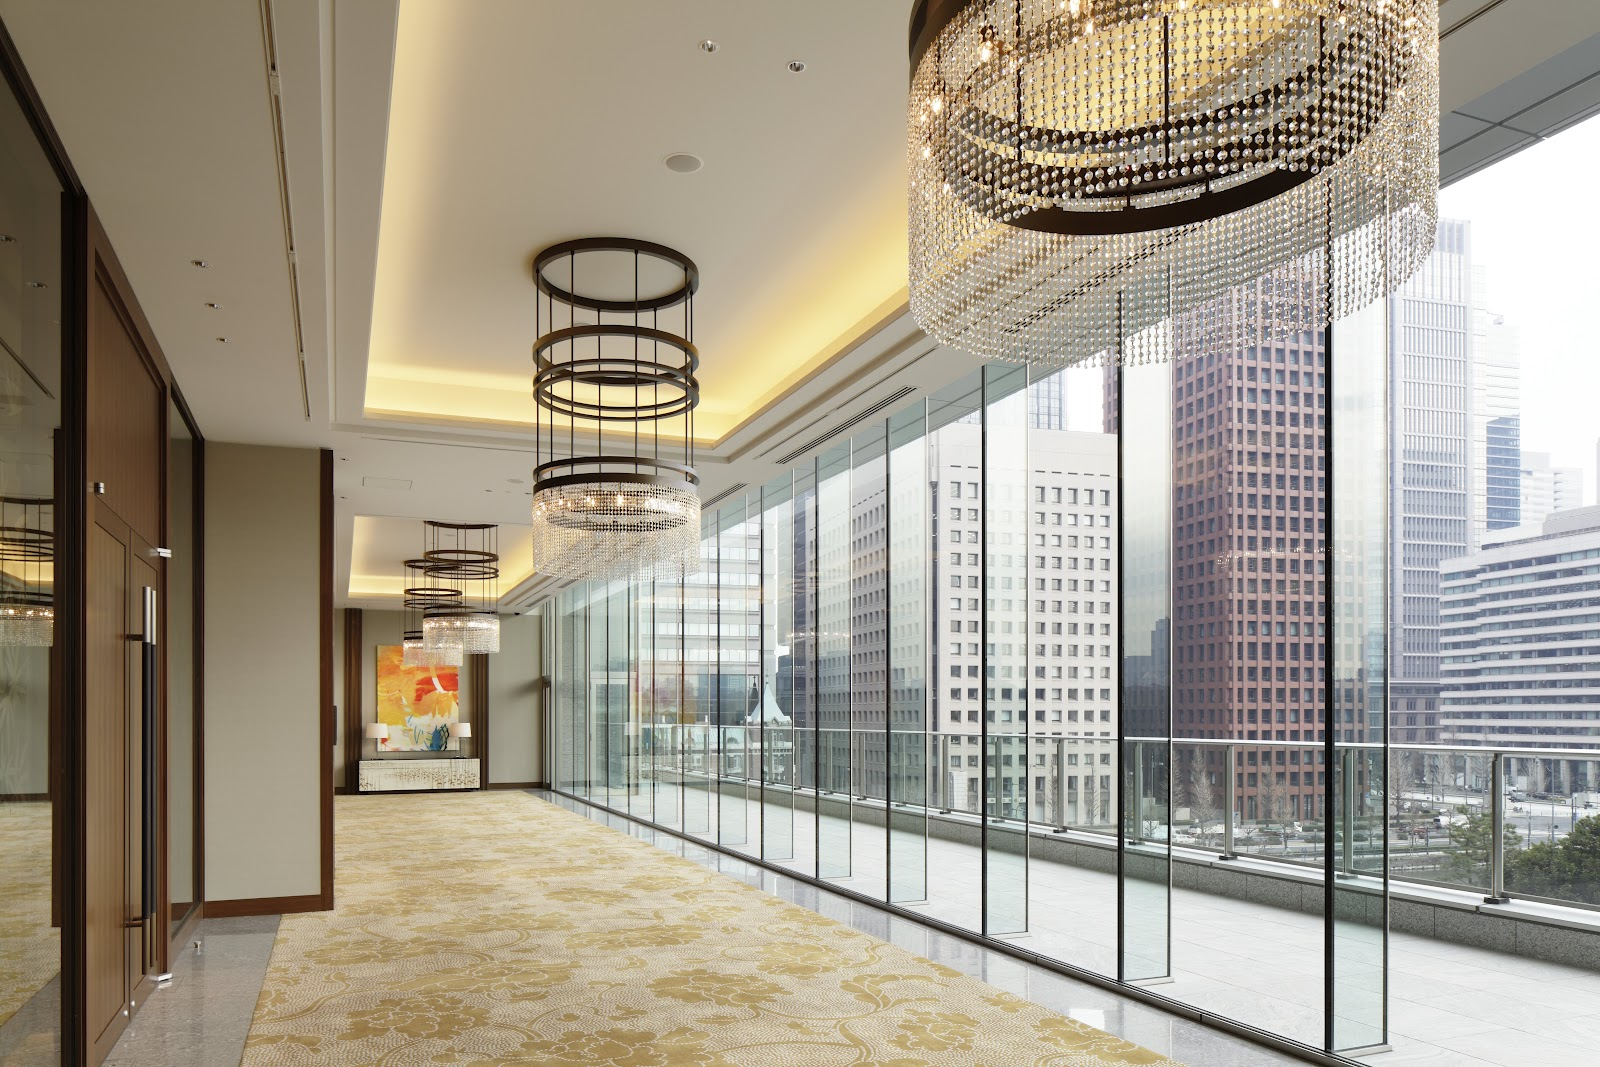 Palace Hotel Tokyo Shoots For The Stars With Michelin Star